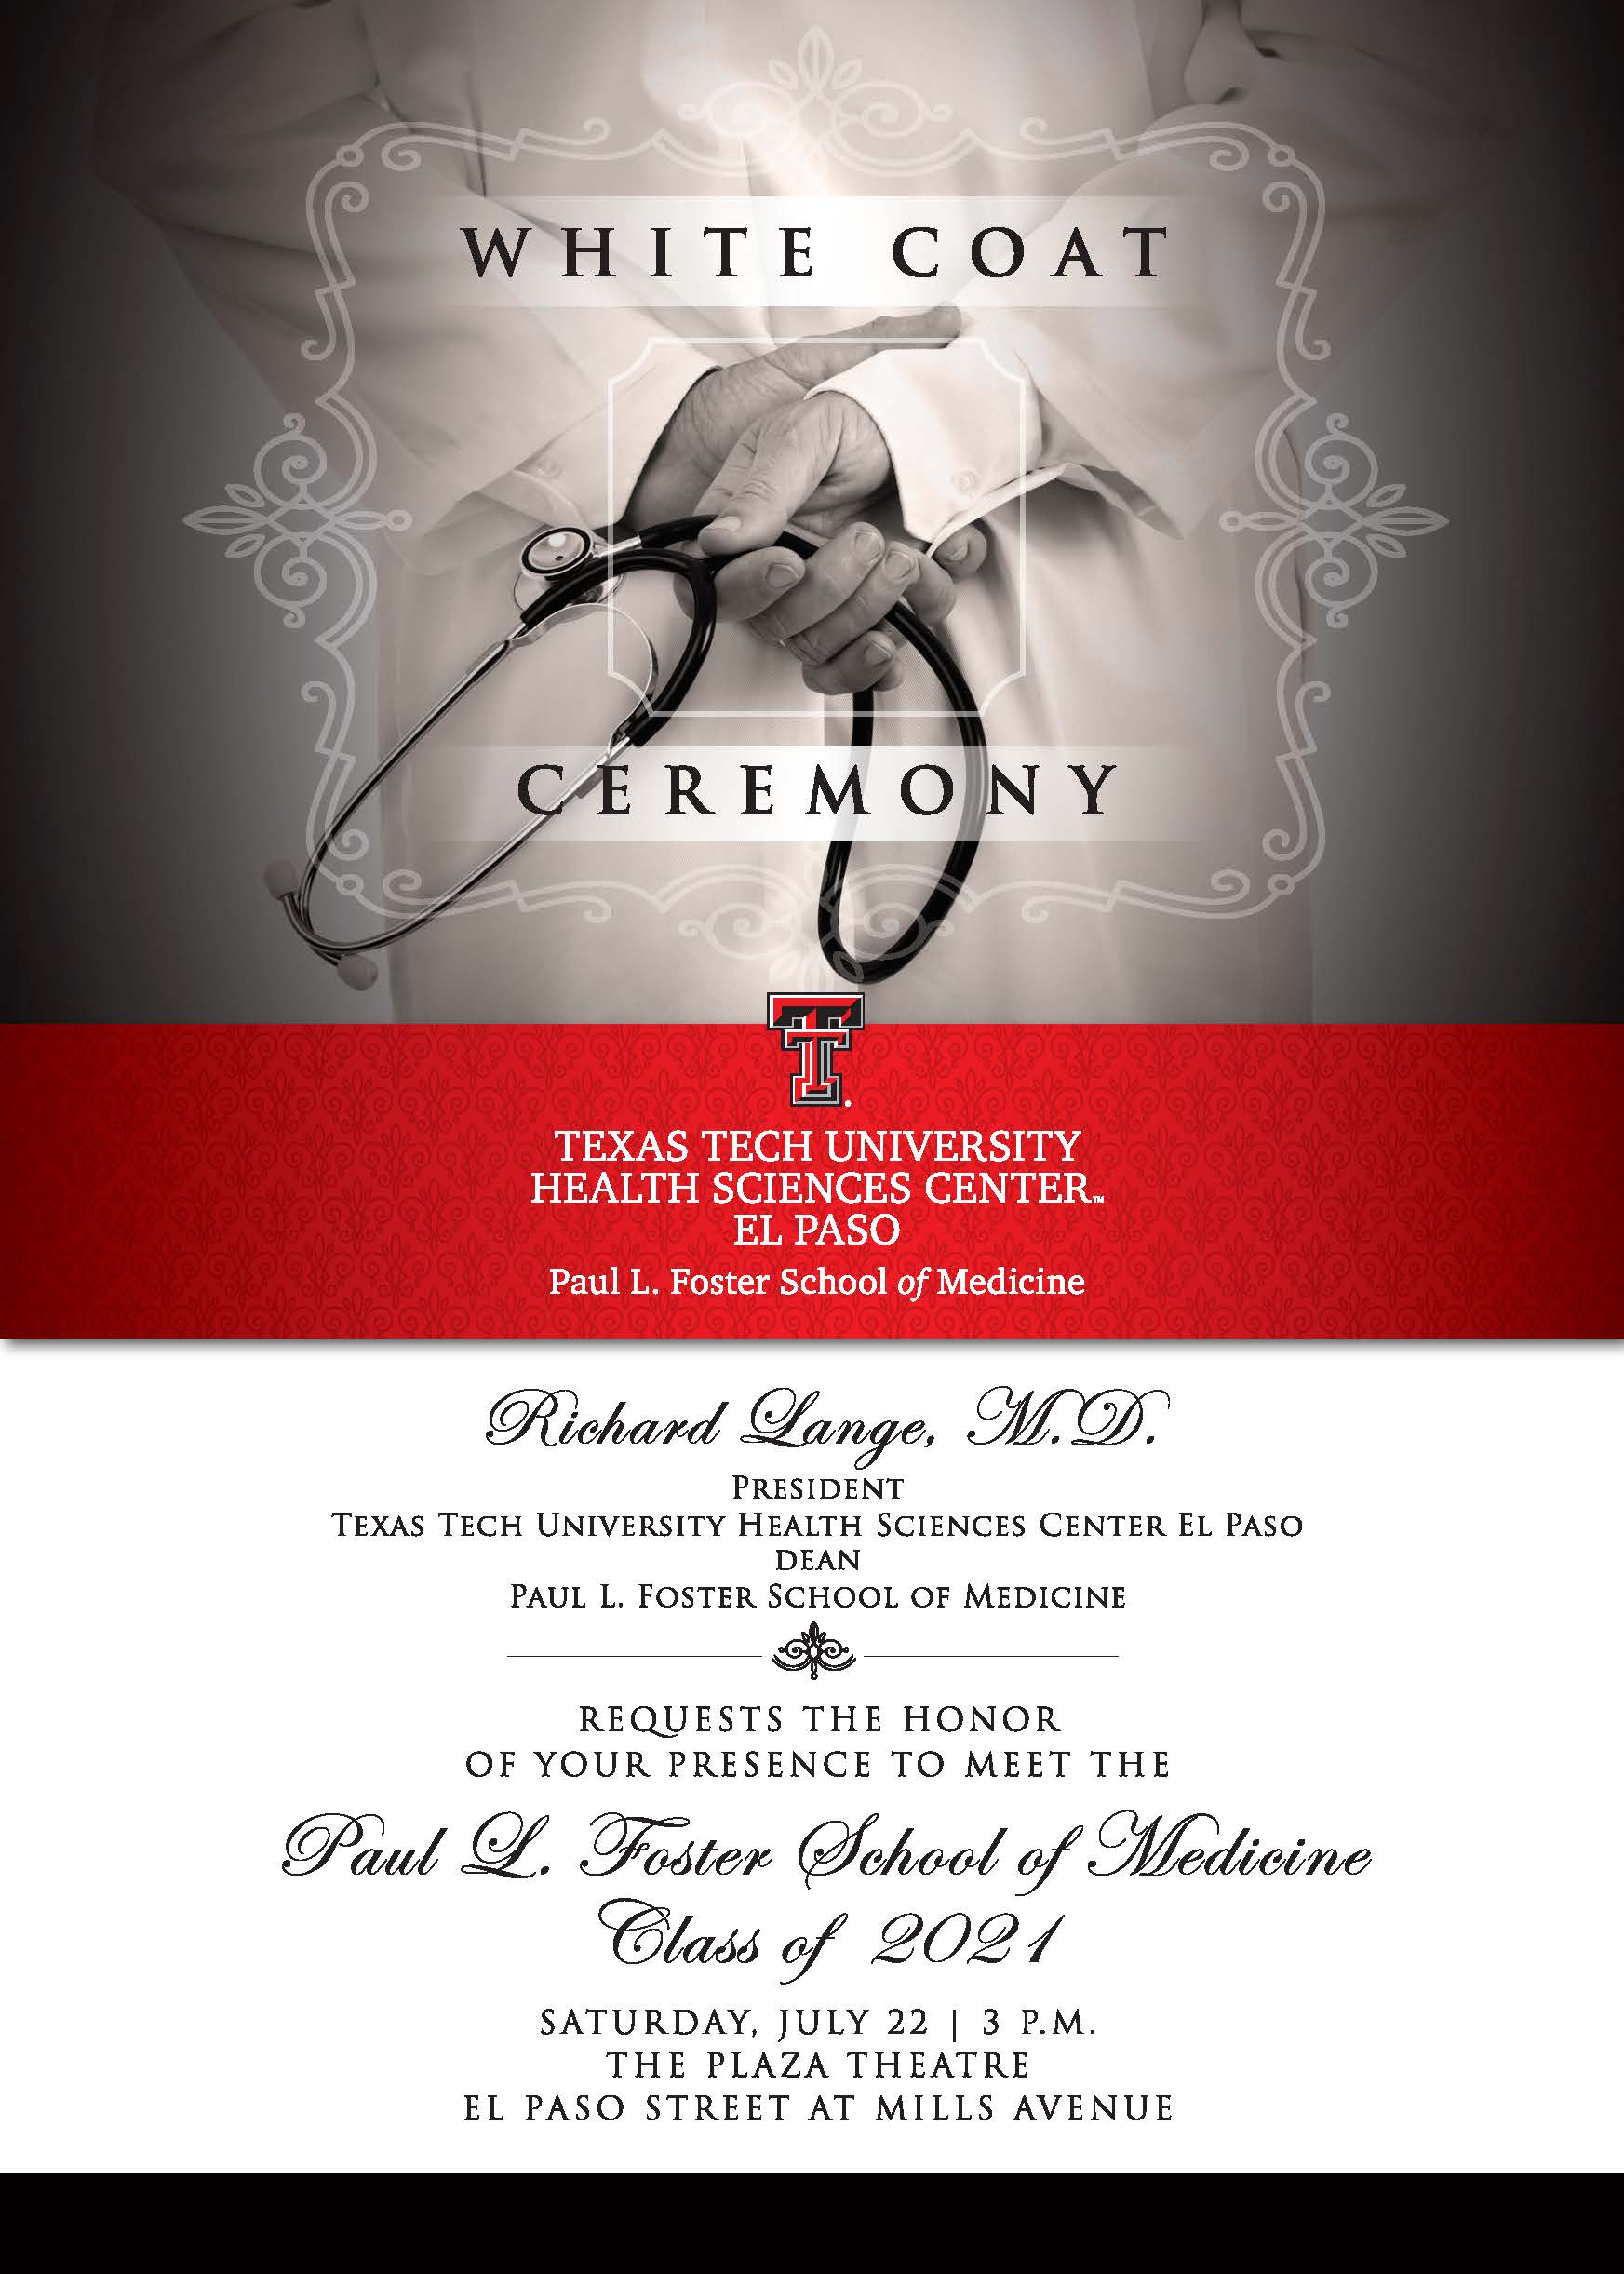 White Coat Ceremony - July 22 regarding Texas Tech Calendar For 2021 -2020 Academic